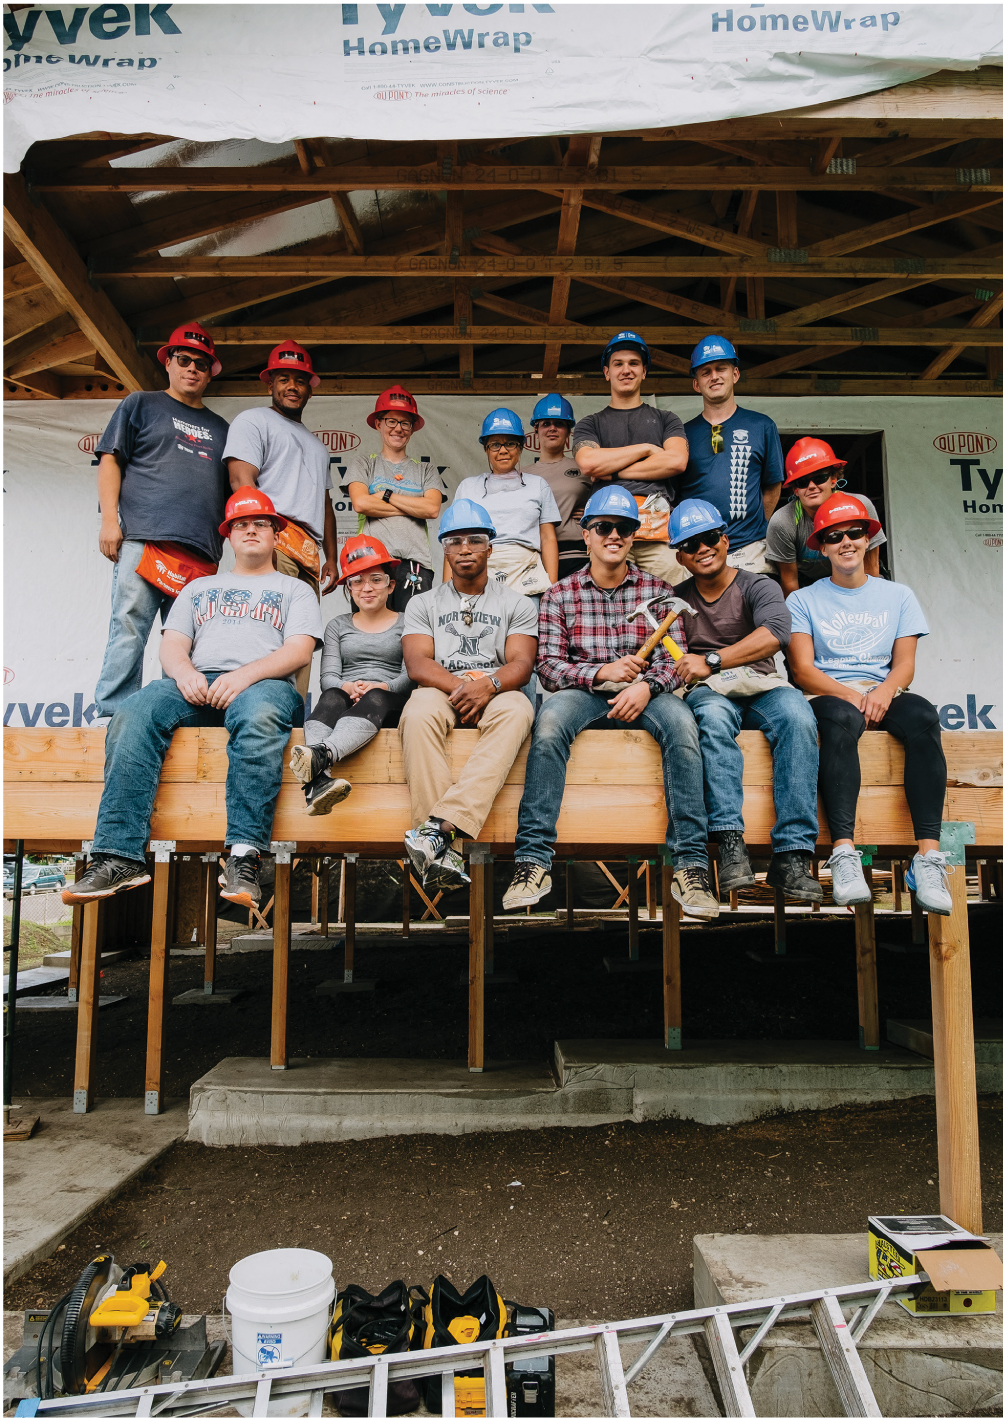 Volunteers from across Oahu rest while installing siding on a new home in Waimanalo. Jim Murphy of Honolulu Habitat says the home is scheduled to be completed in April for a Native Hawaiian woman, who is the single mother of three children.